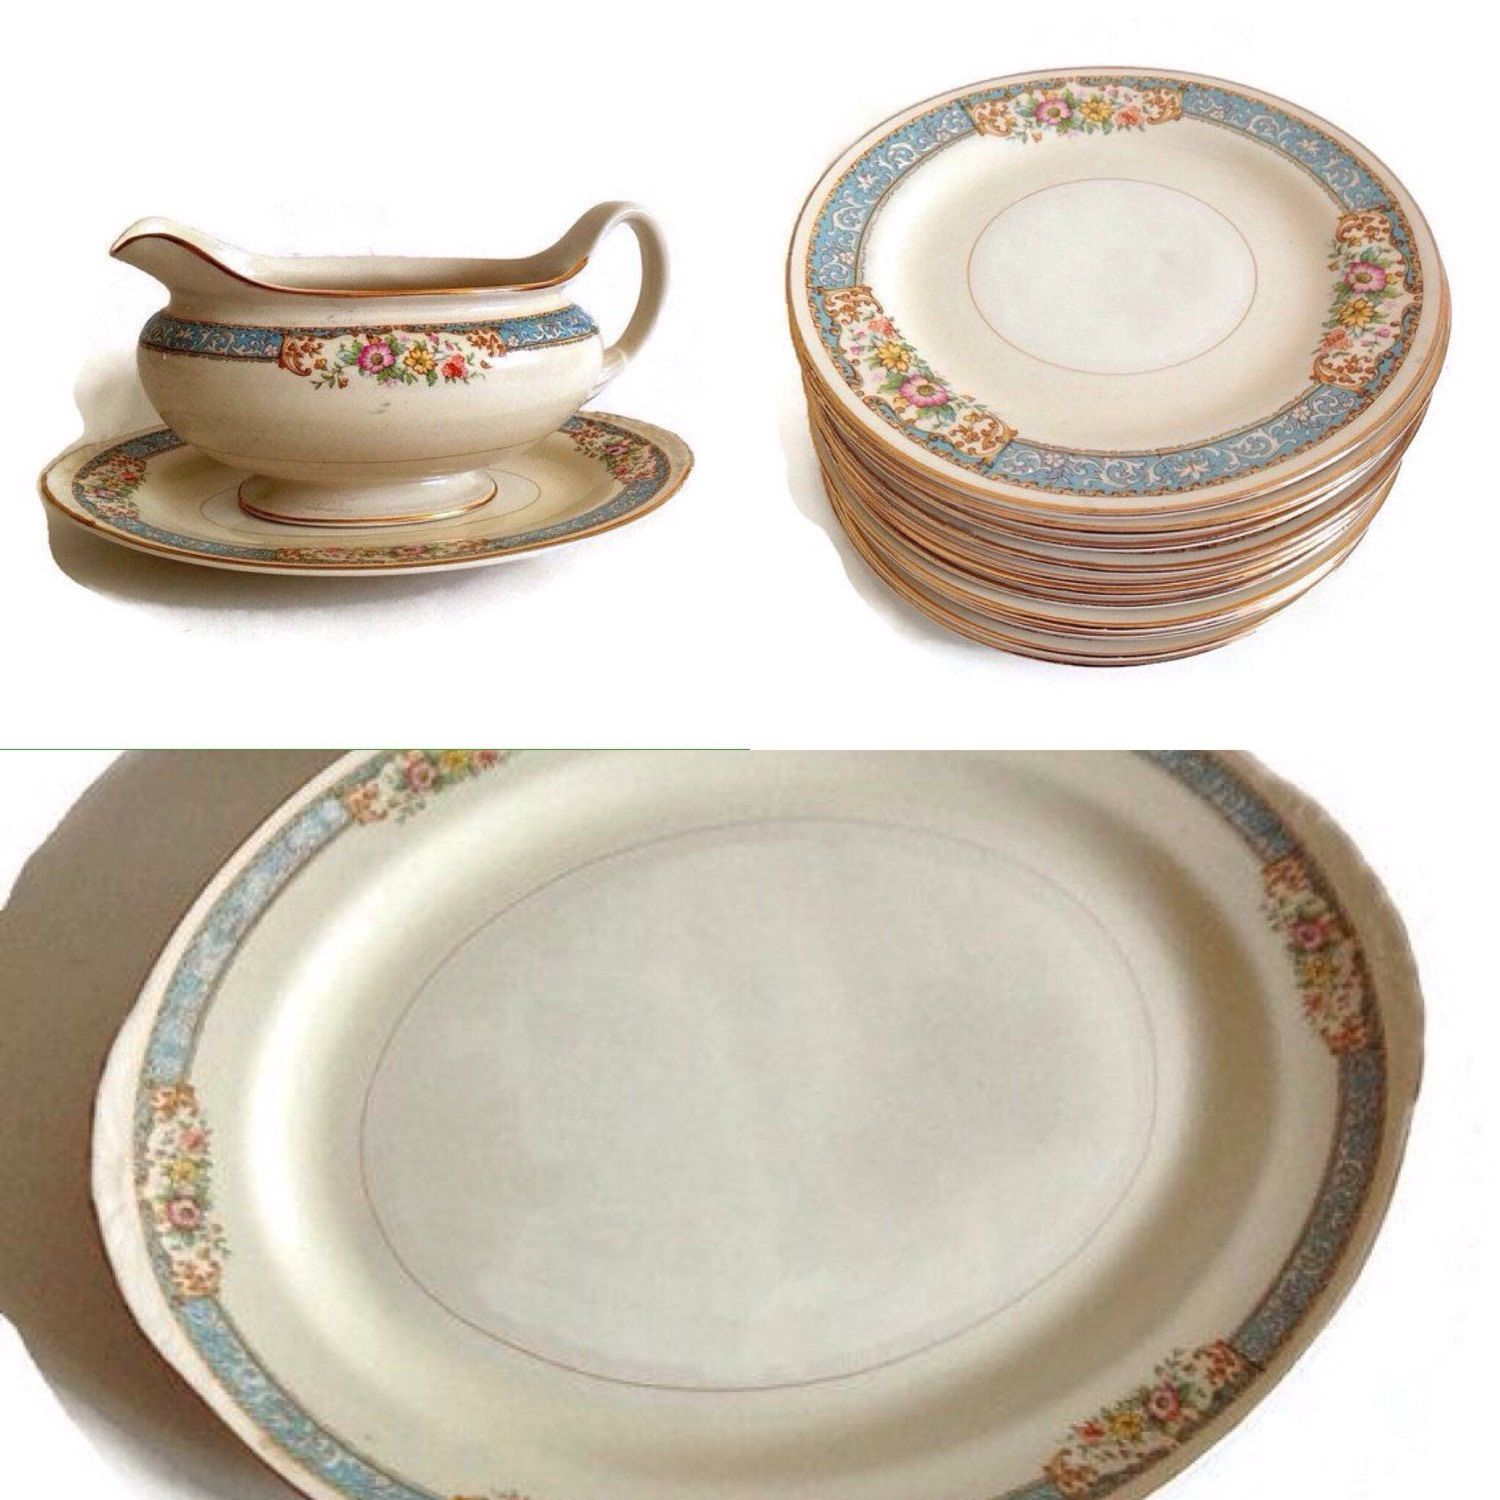 Discontinued China Patterns  sc 1 st  Pinterest & Discontinued China Patterns | Vintage Dinnerware- Plates~Dinner ...